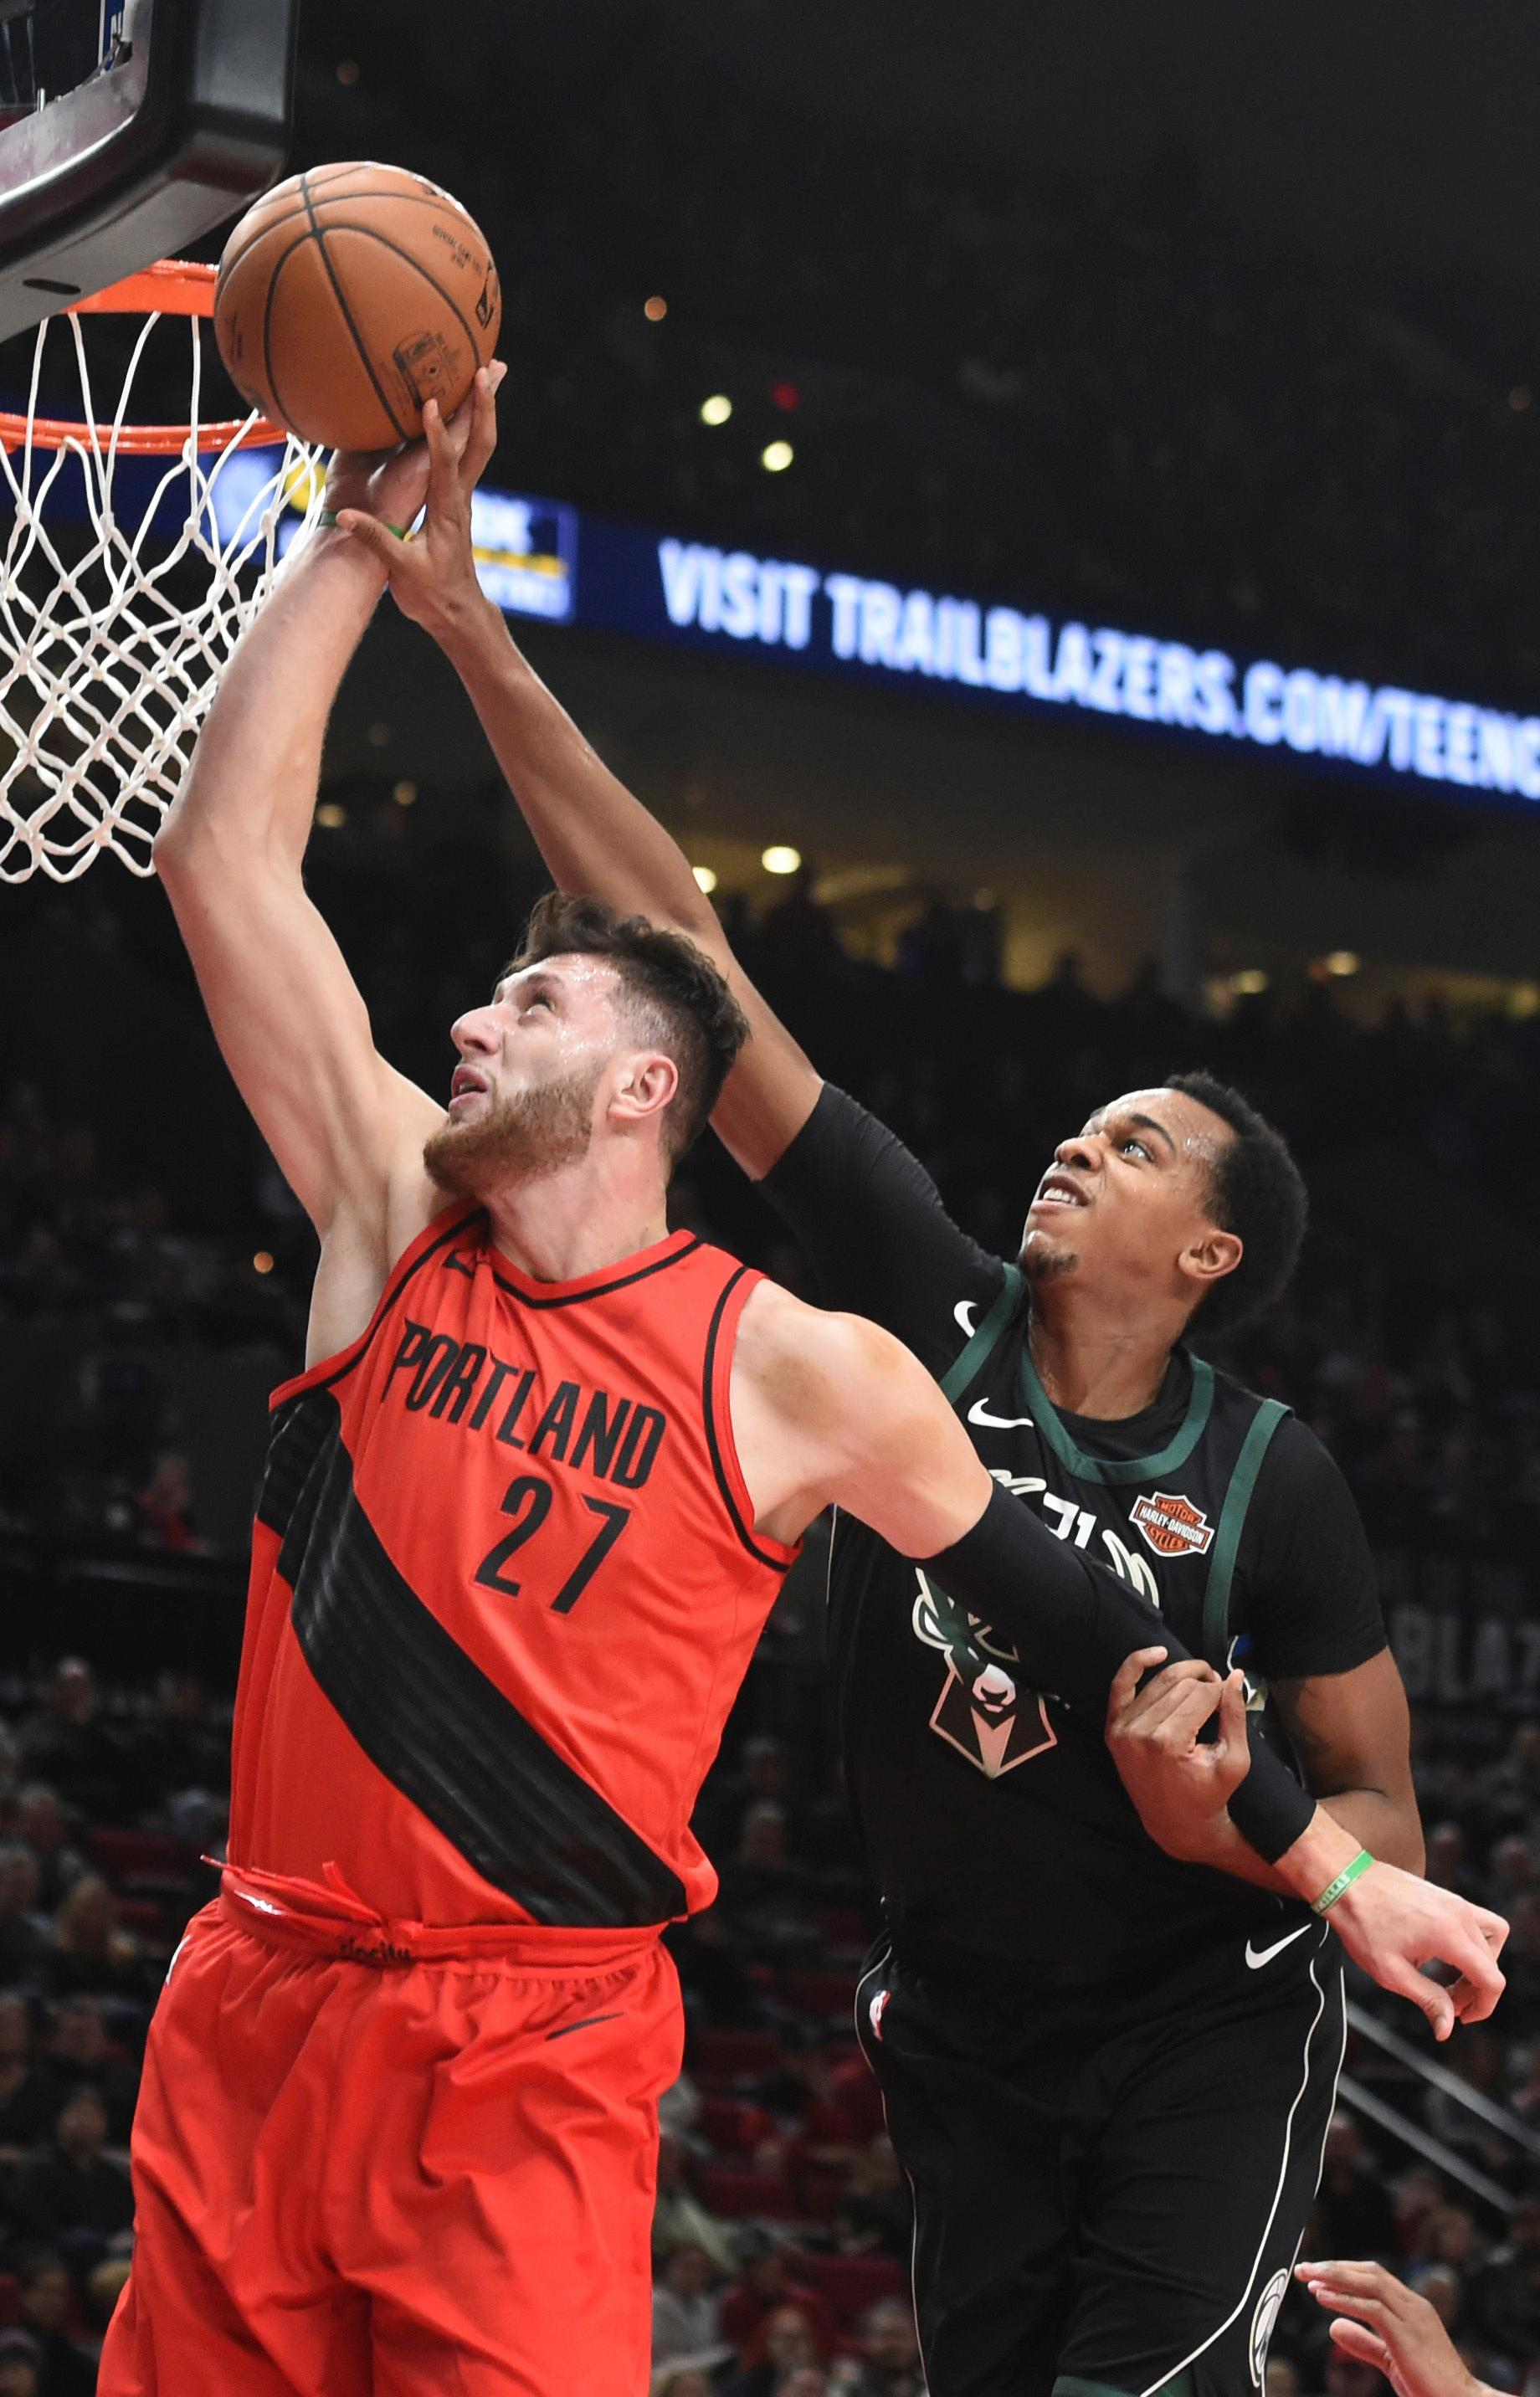 Portland Trail Blazers center Jusuf Nurkic grabs a rebound in front of Milwaukee Bucks forward John Henson during the first quarter of an NBA basketball game in Portland, Ore., Thursday, Nov. 30, 2017. (AP Photo/Steve Dykes)